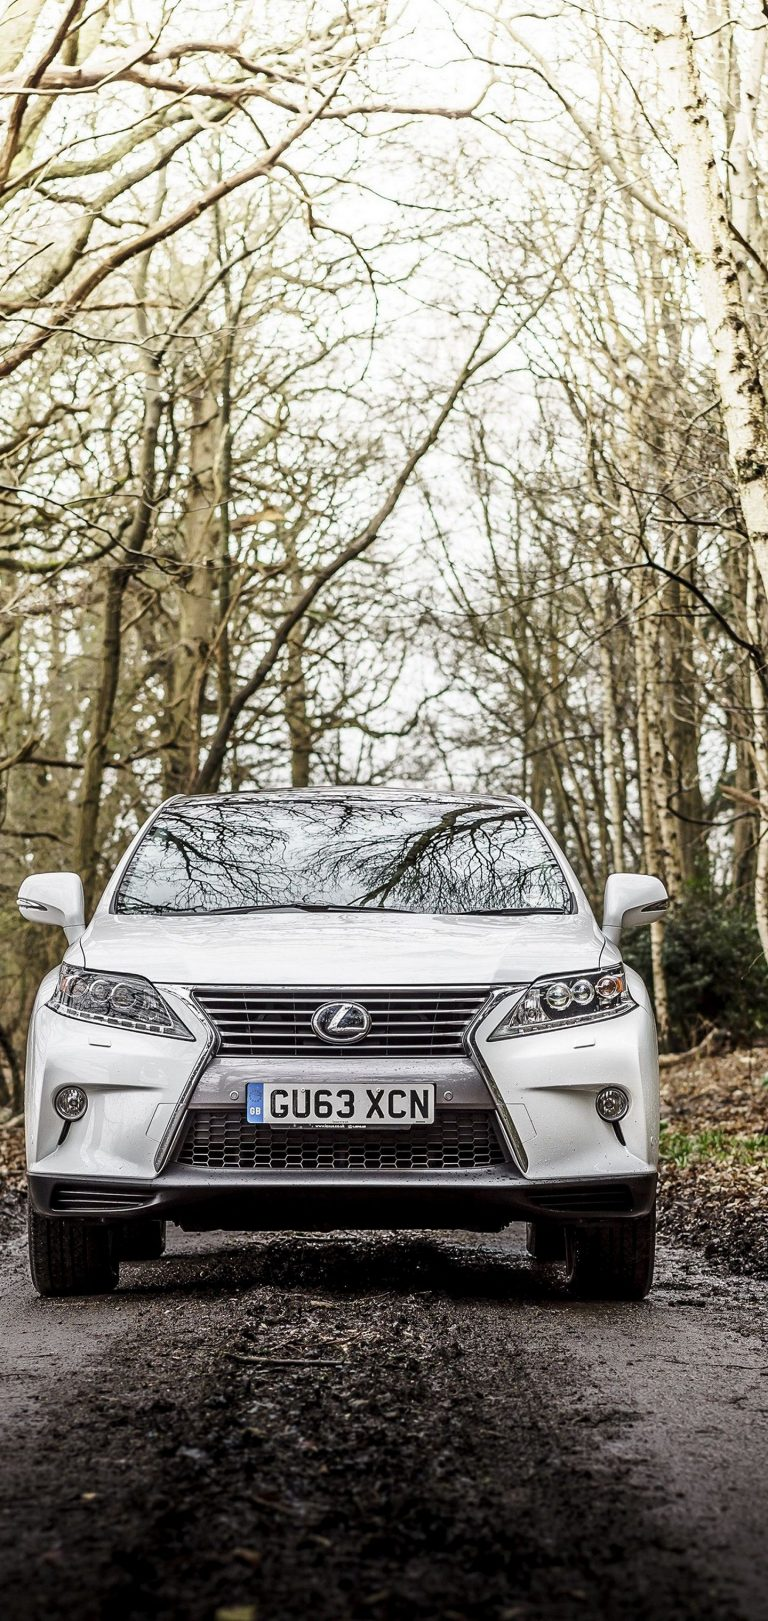 Lexus Rx 450h F Sport Uk Spec White Wallpaper 1440x3040 768x1621